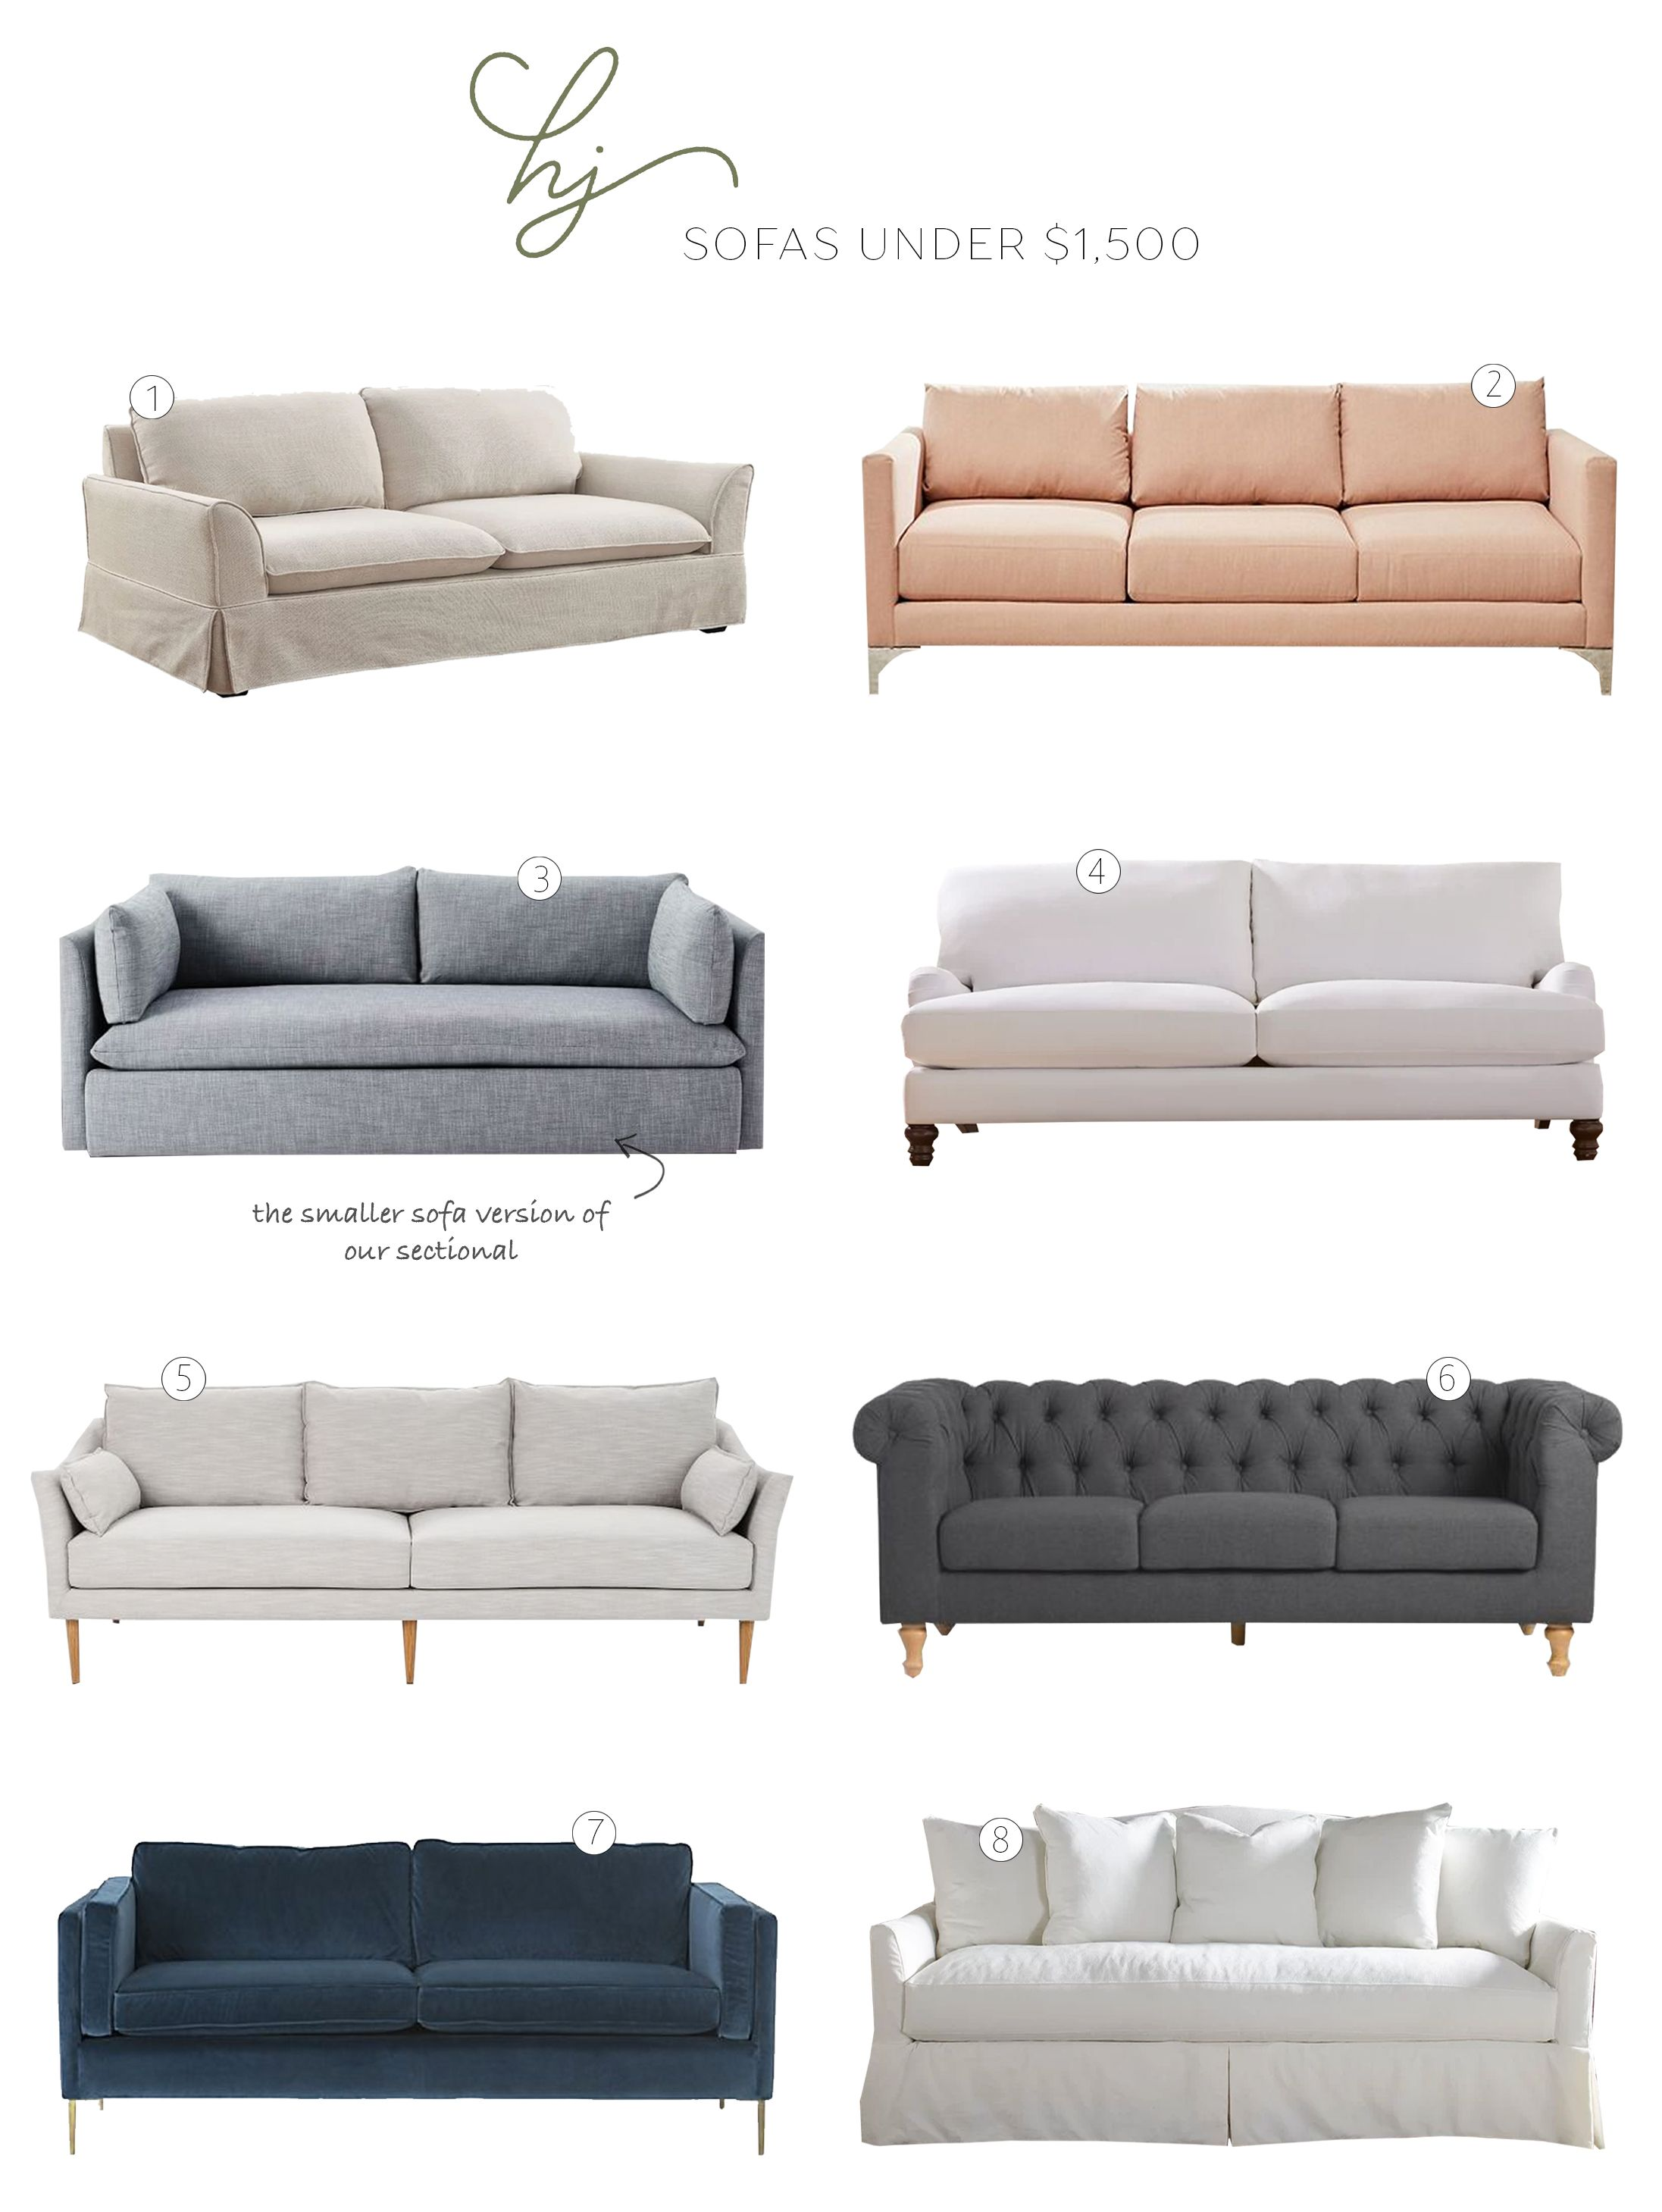 Sofas At Every Price Sofa Large Sofa Sectional Sofa